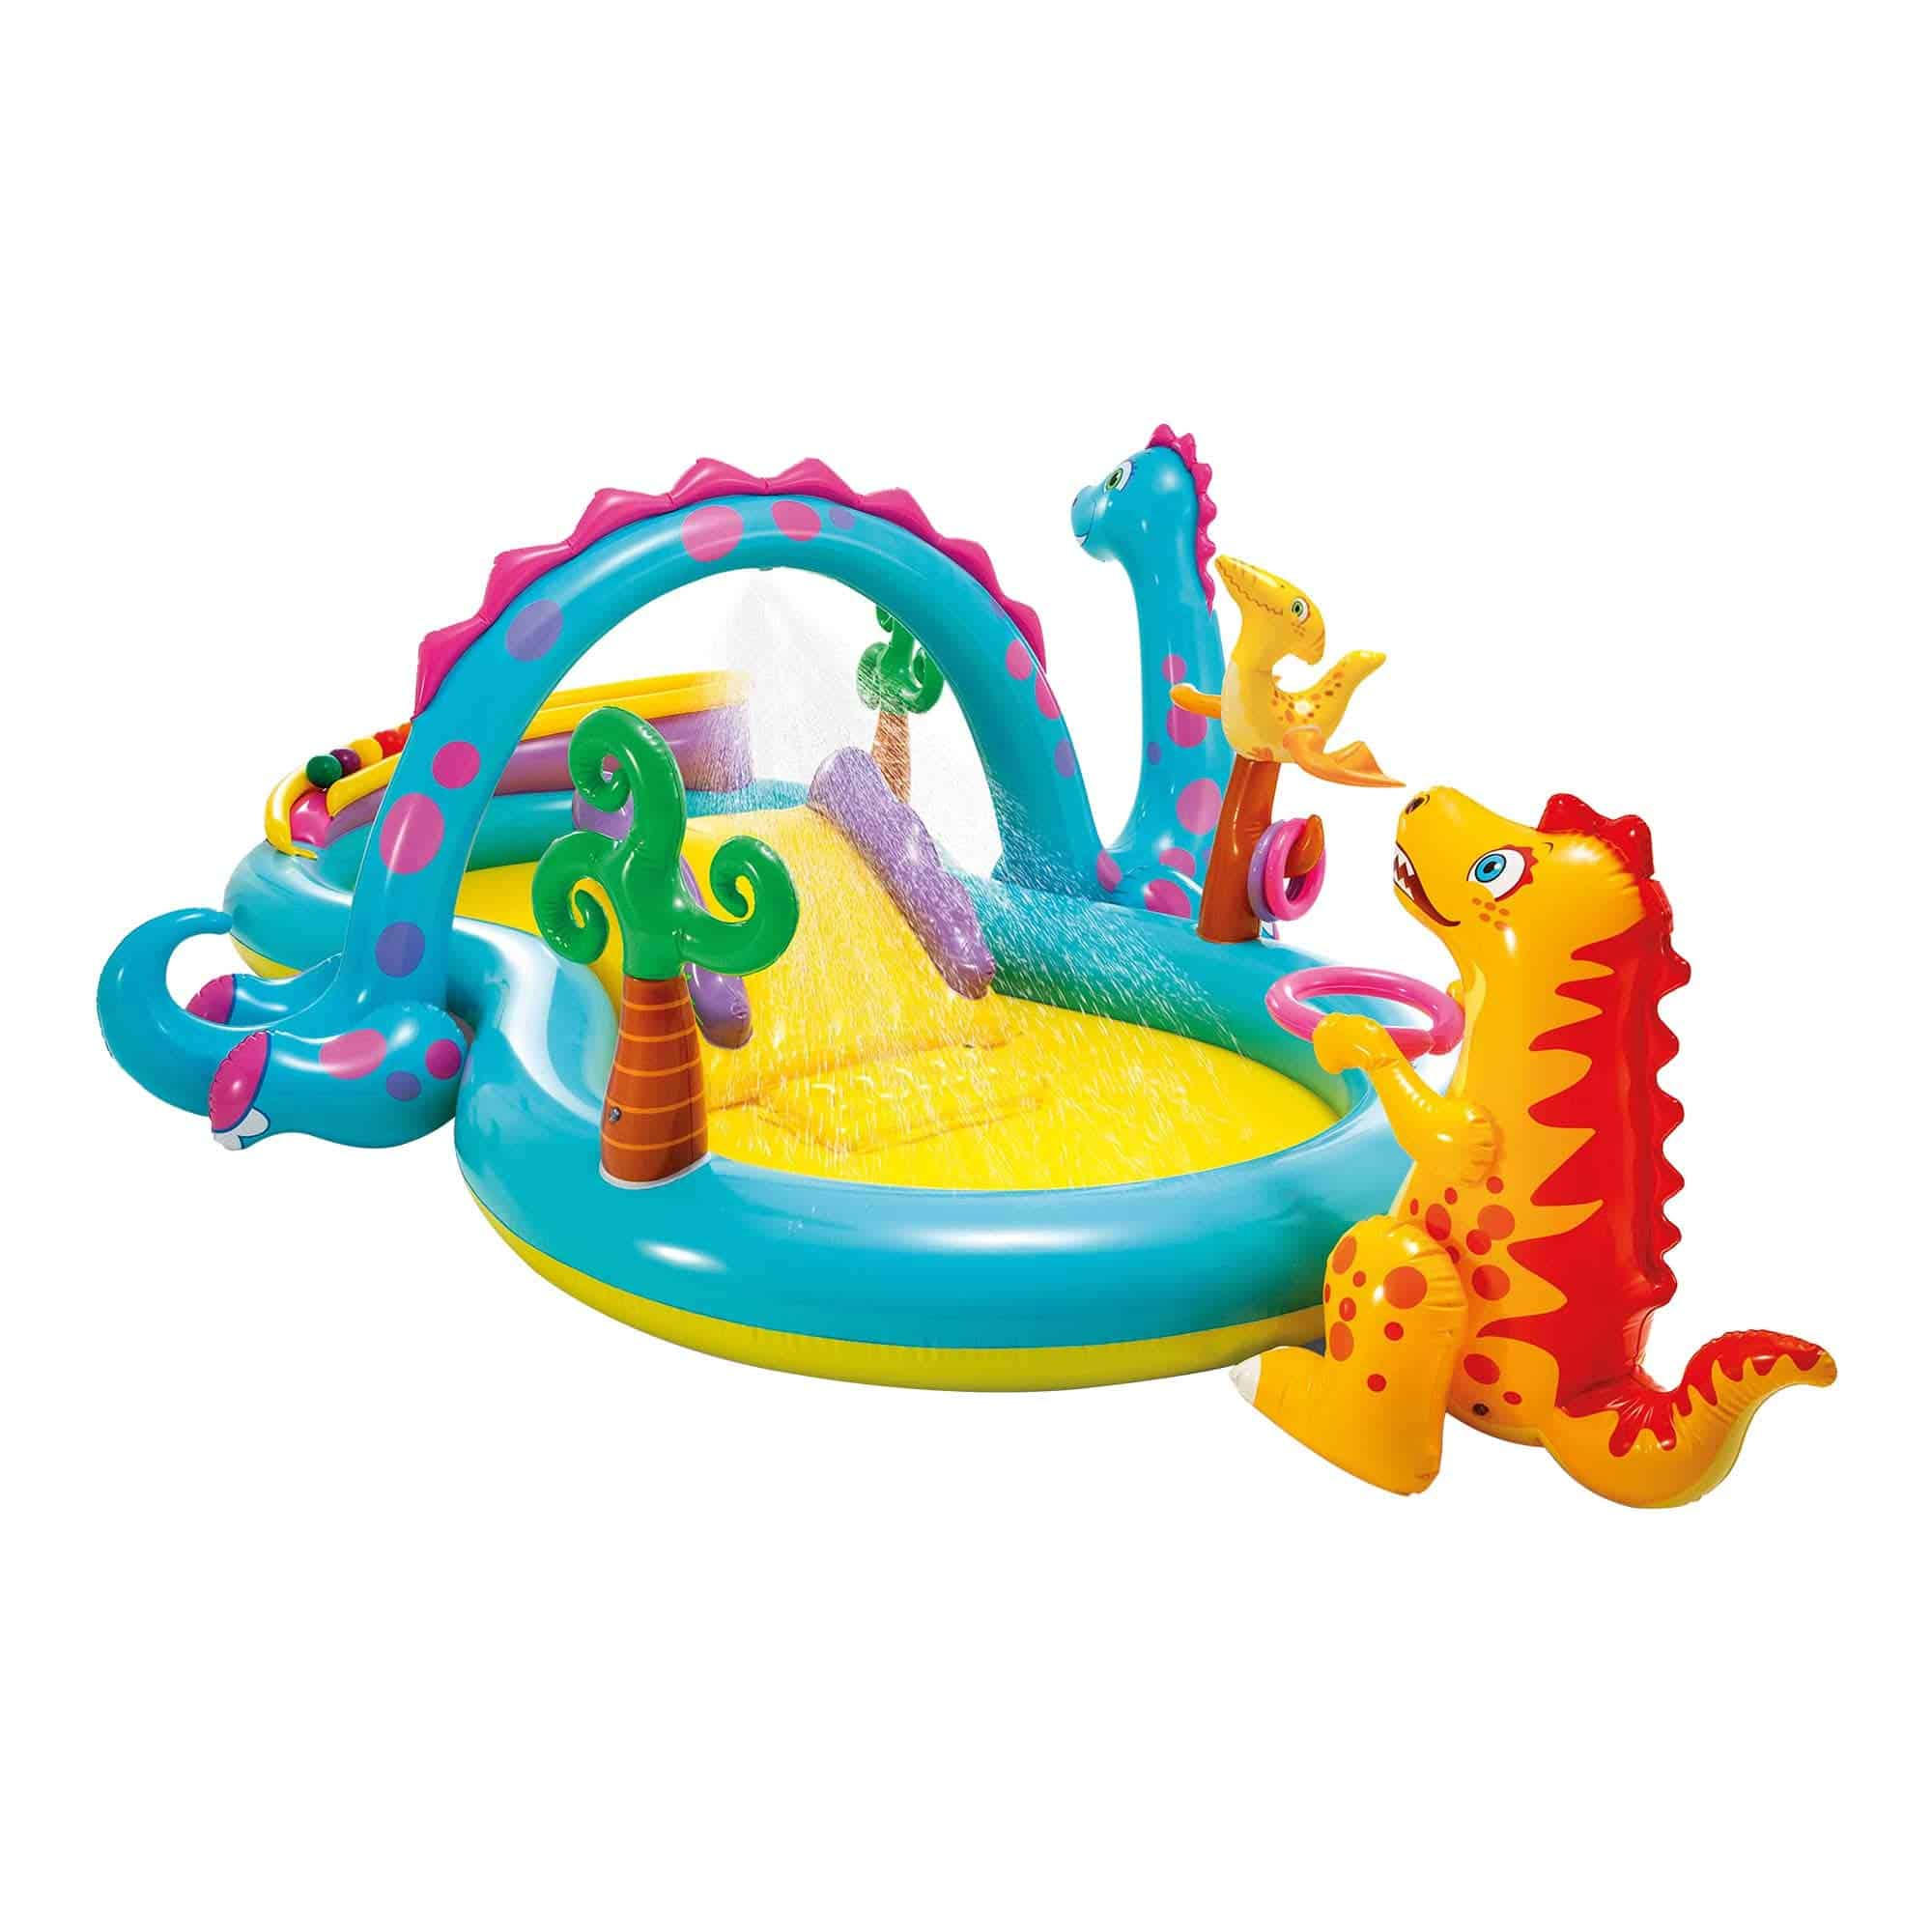 Intex Dinoland Inflatable Play Center - Best play center for kids